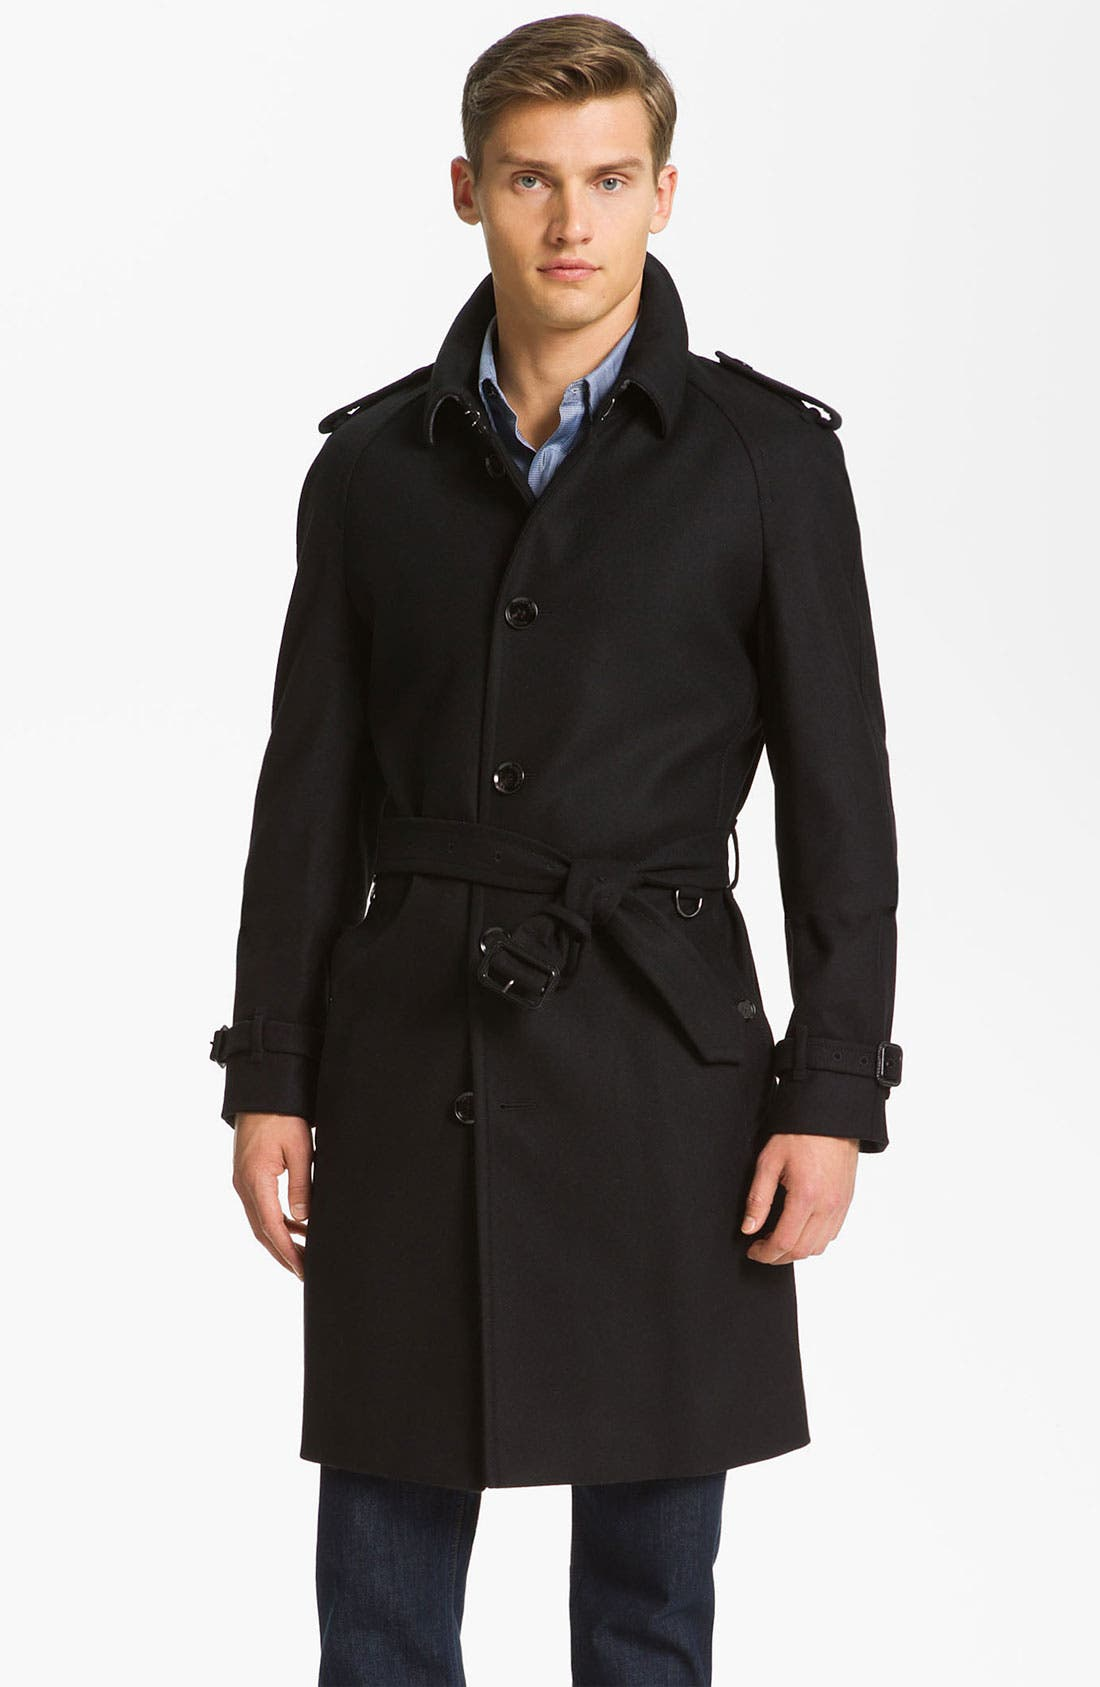 Main Image - Burberry London Trim Fit Wool Blend Trench Coat